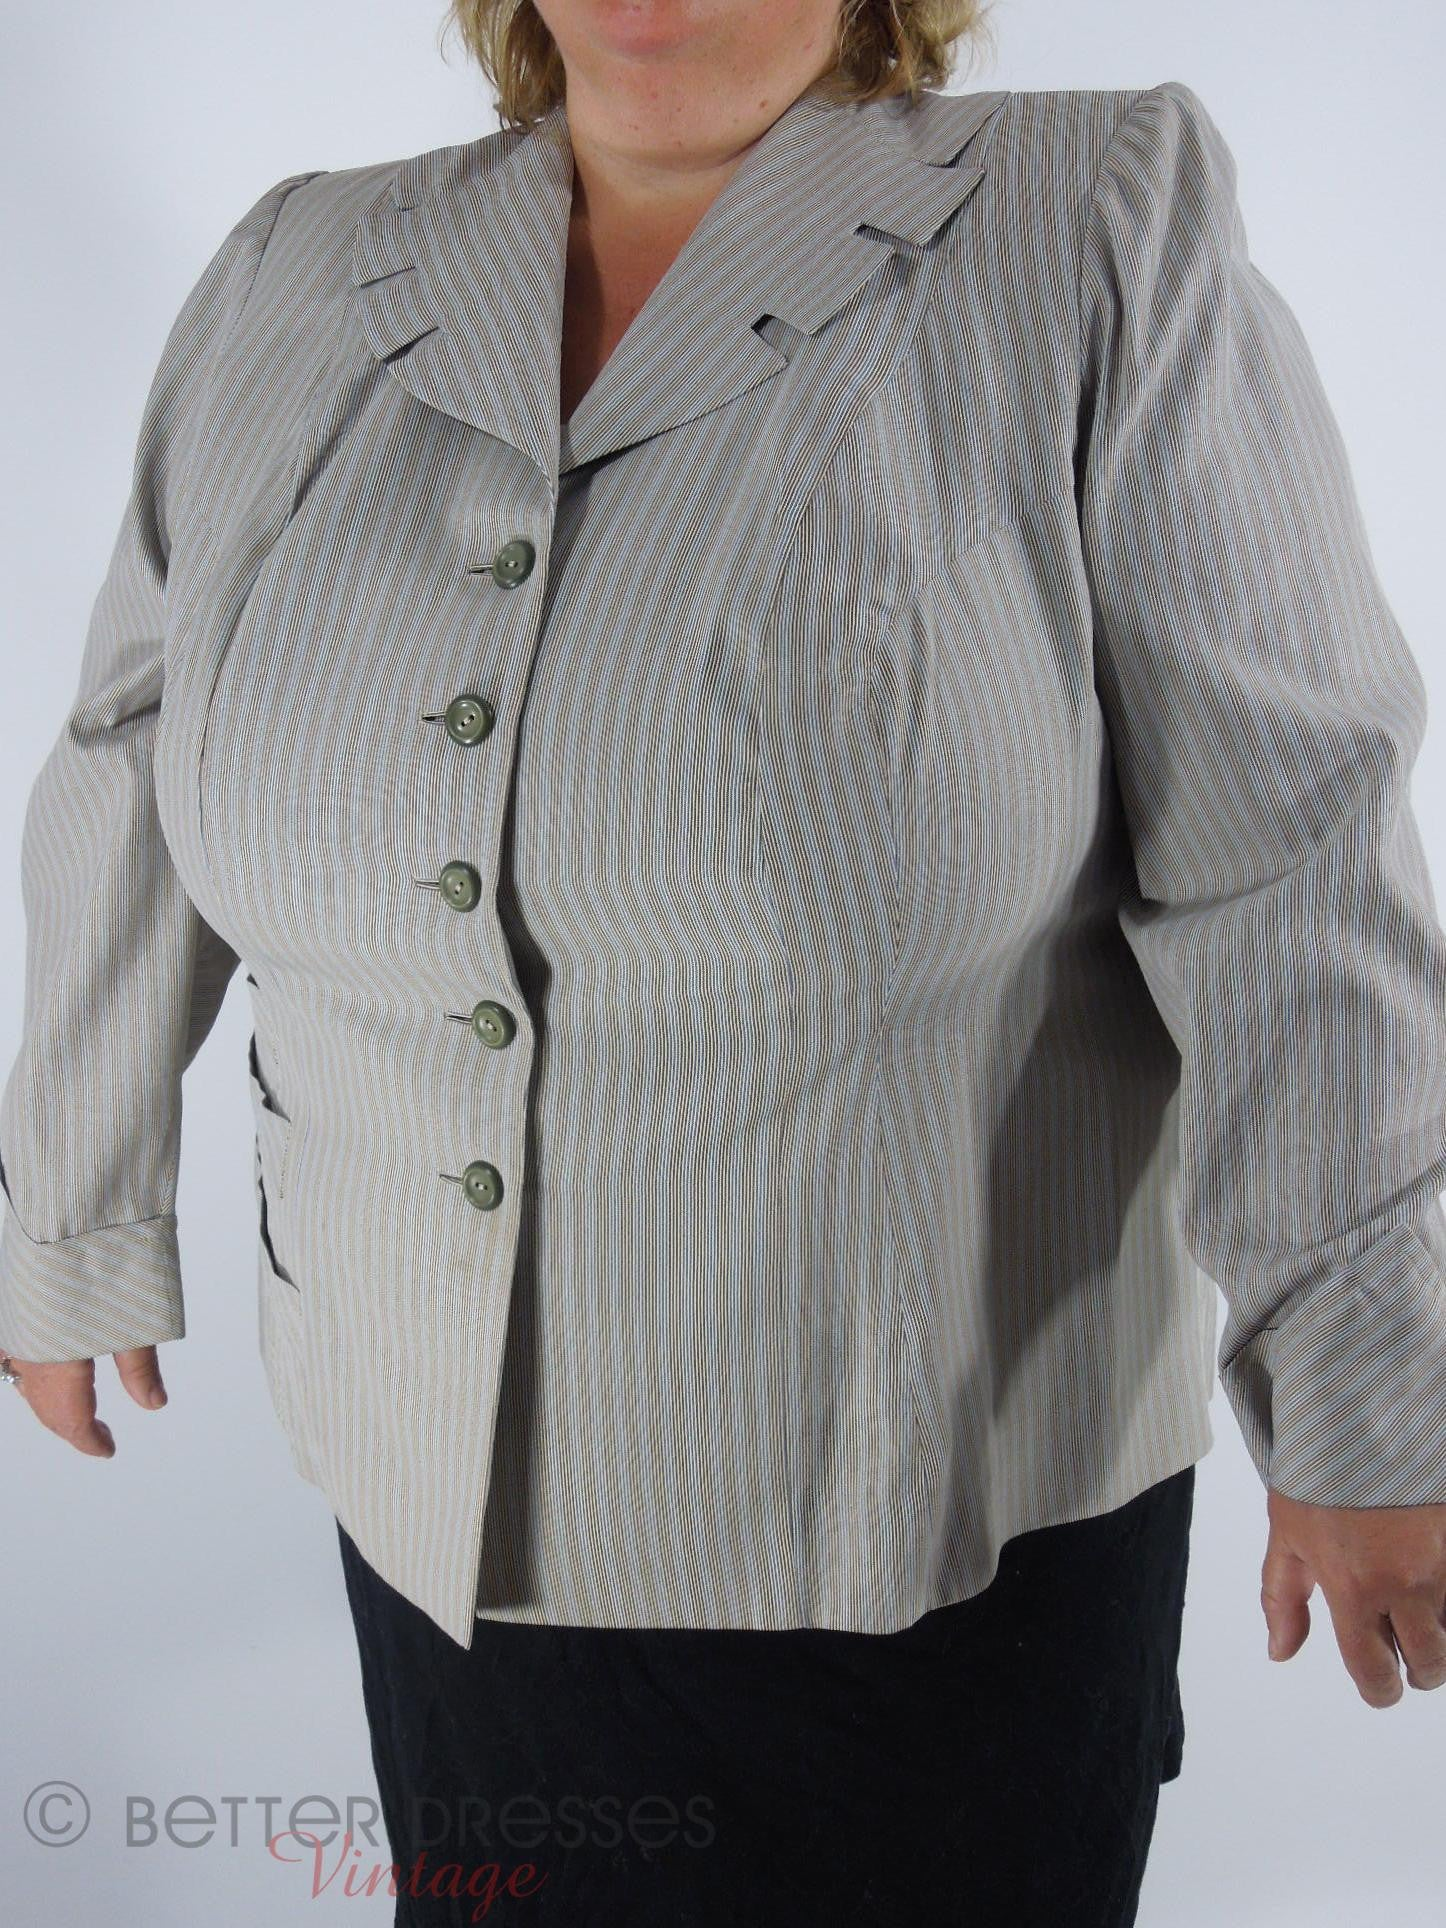 b38d3abf697 ... 1940s 1950s Plus Size Jacket ...